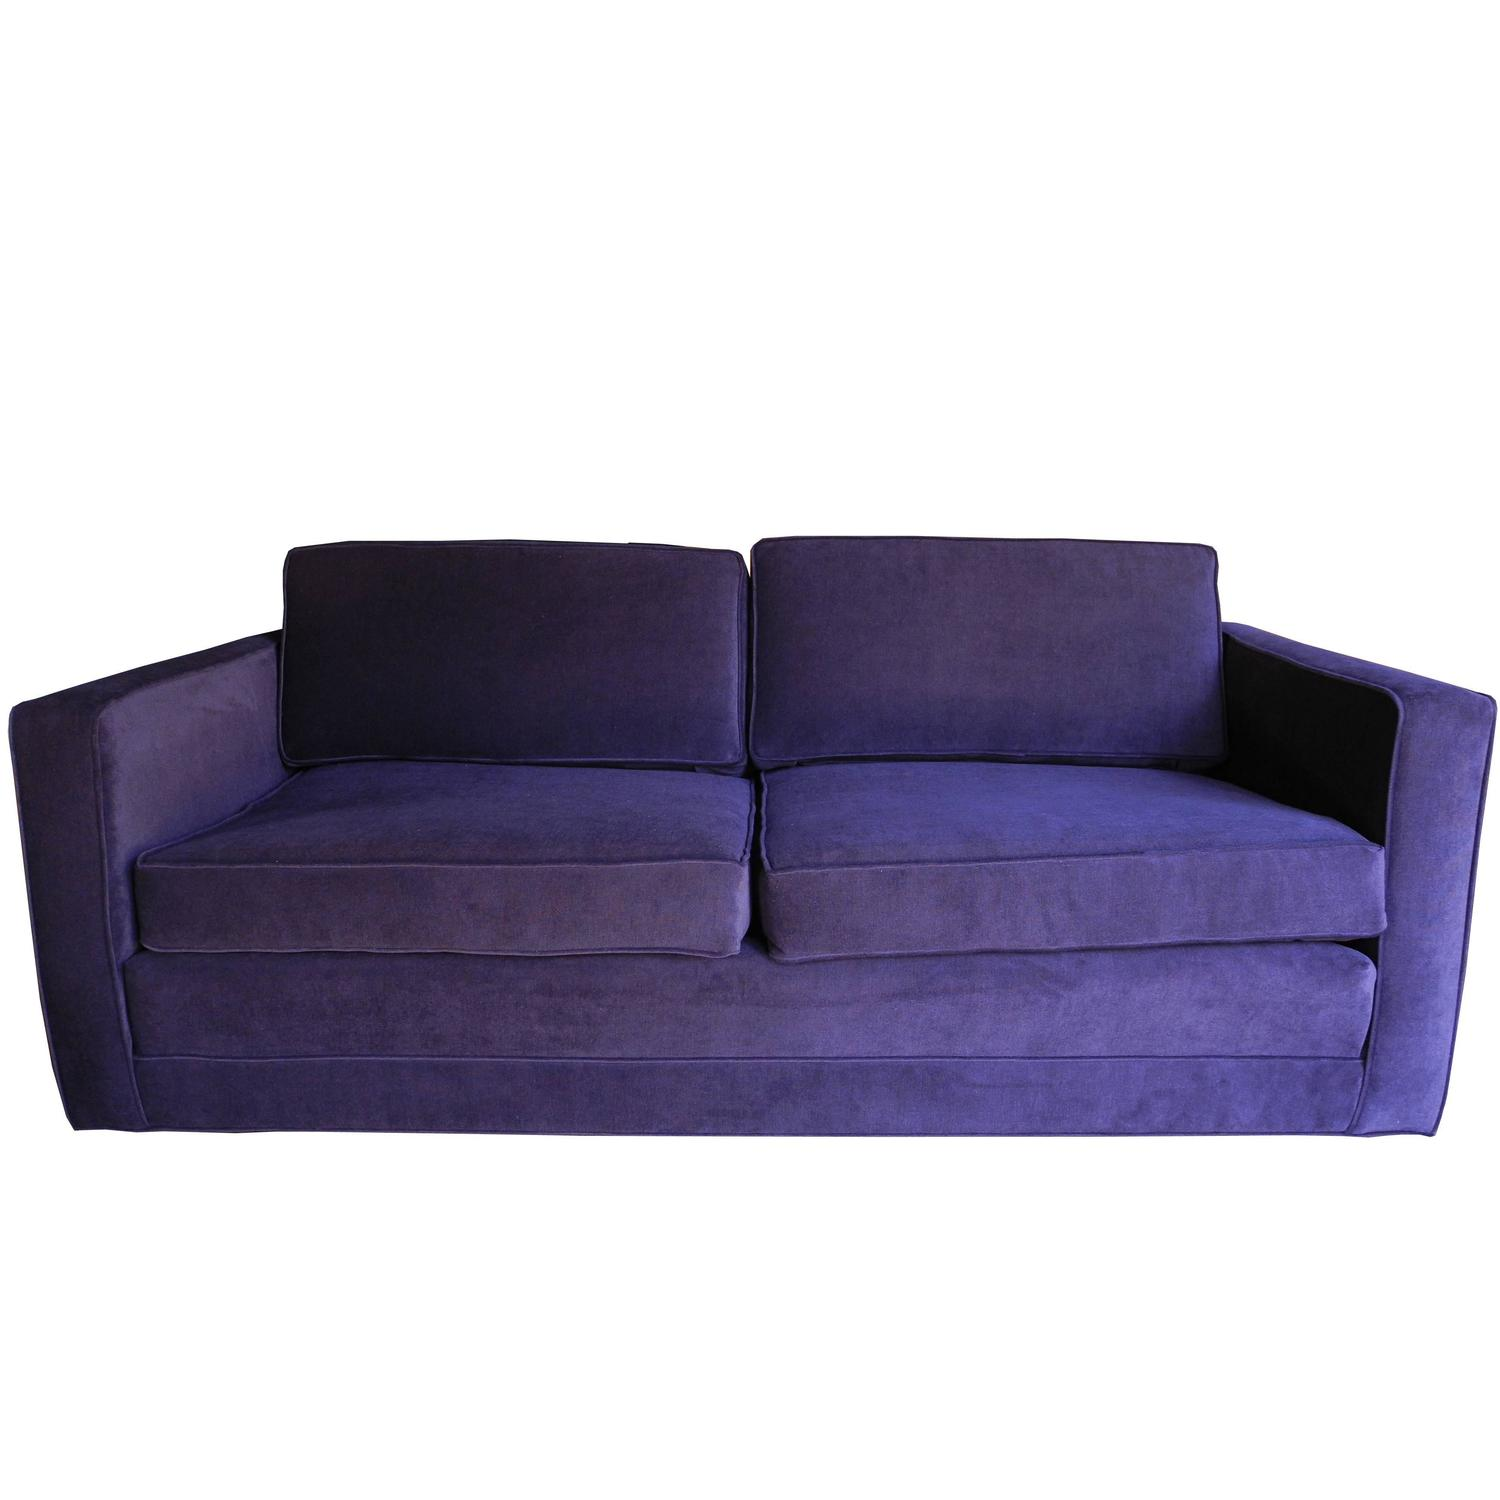 Hannah Morrison for Knoll Sling Settee Sofa at 1stdibs